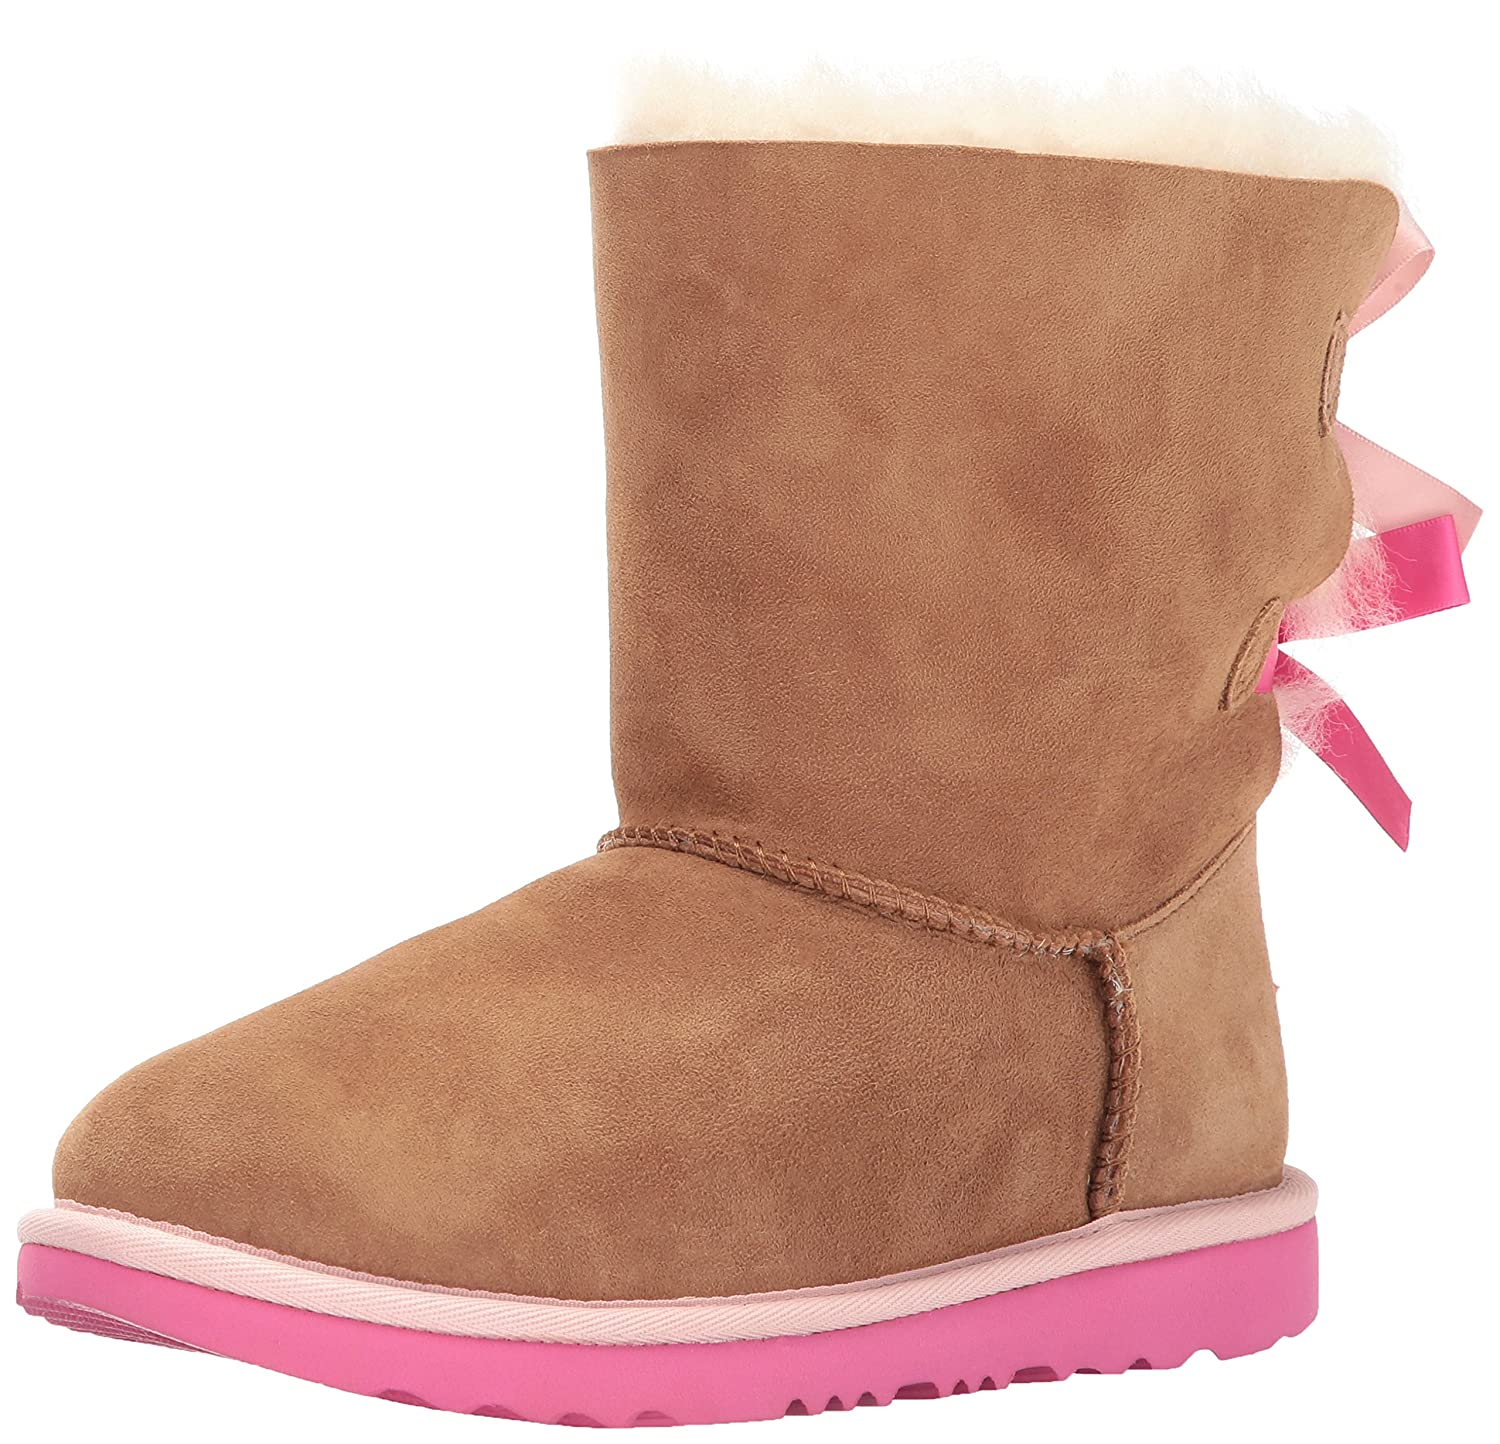 6c534be37fe UGG Kids K Bailey Bow II Fashion Boot